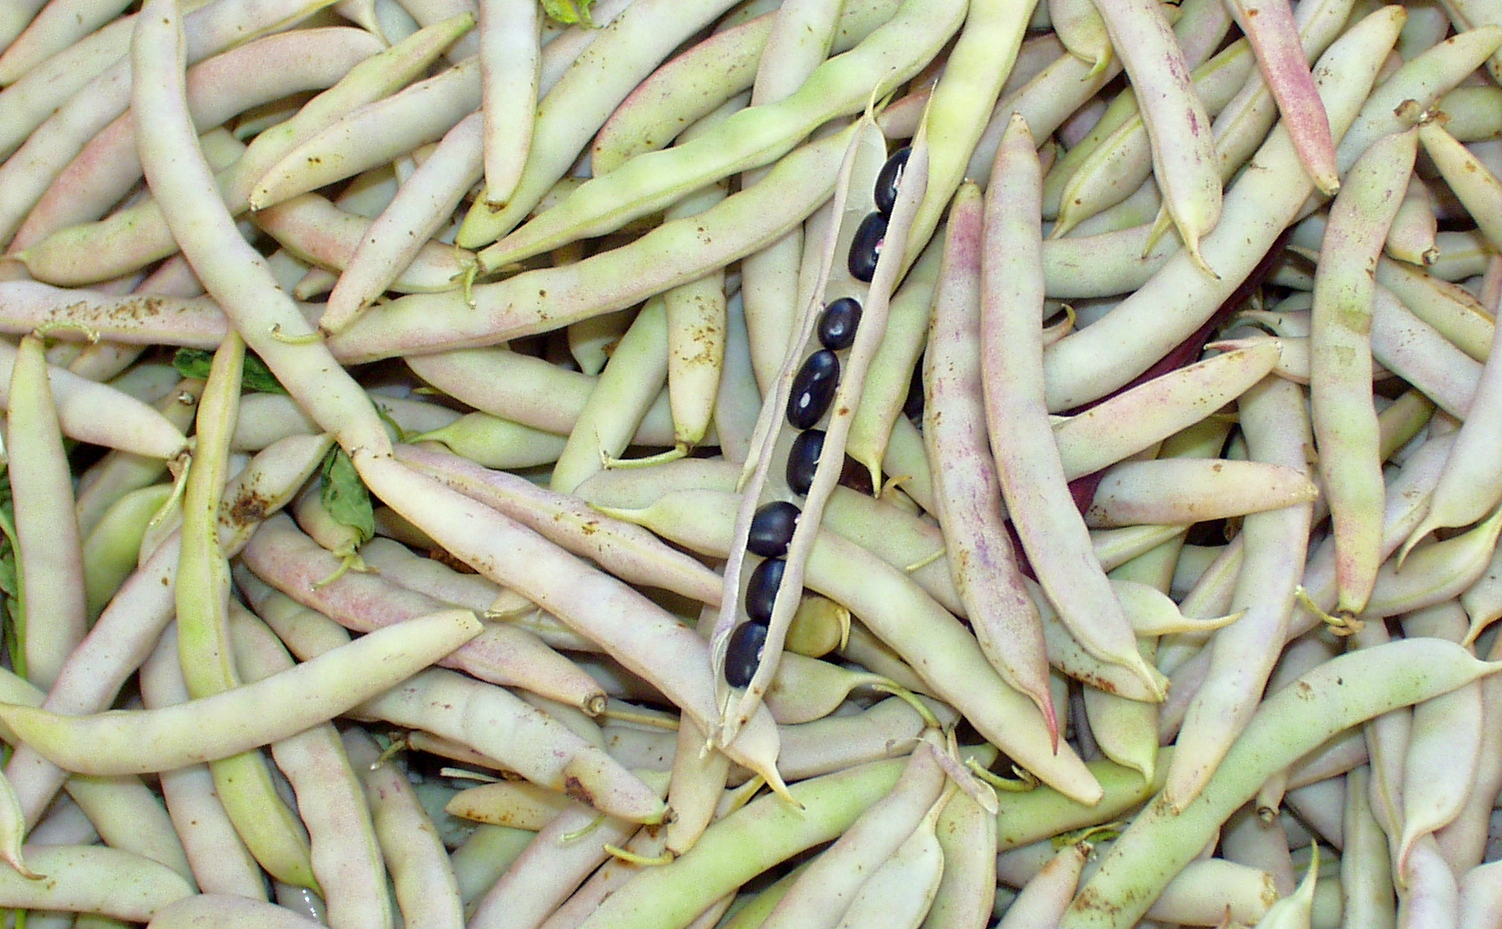 Black Turtle shelling beans from Alm Hill. Photo copyright 2009 by Zachary D. Lyons.